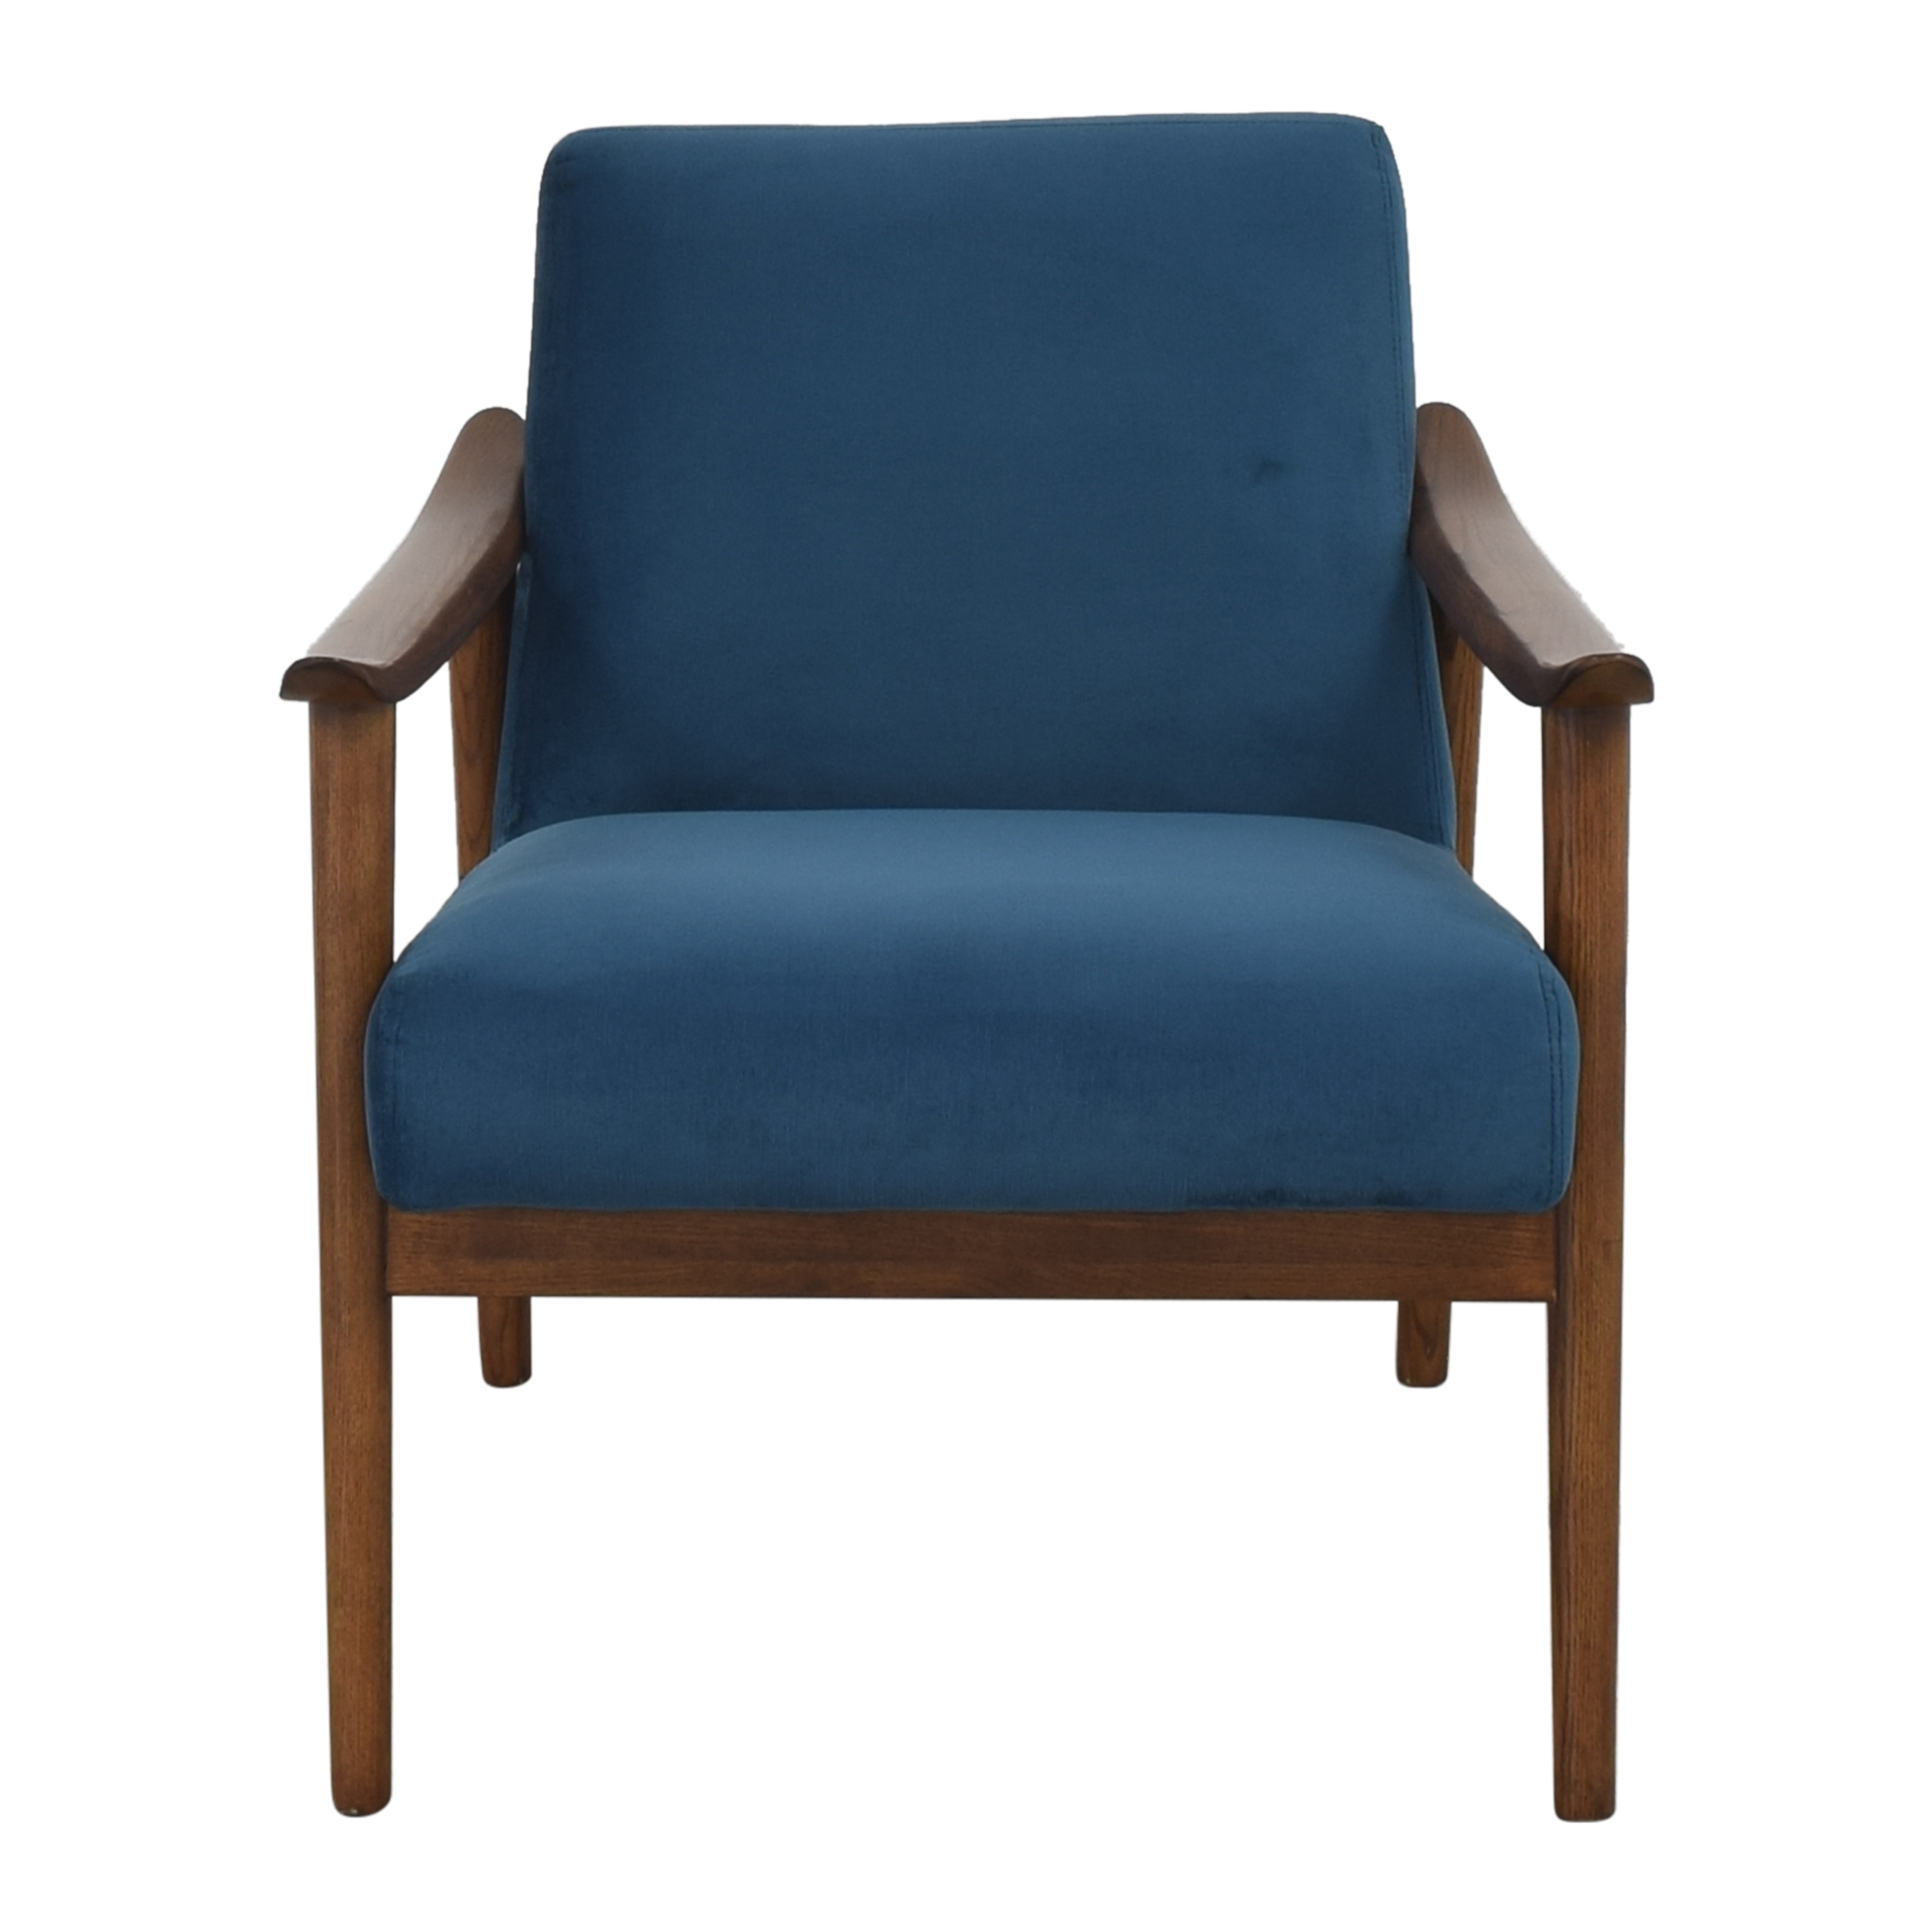 West Elm West Elm Mid-Century Show Wood Upholstered Chair for sale